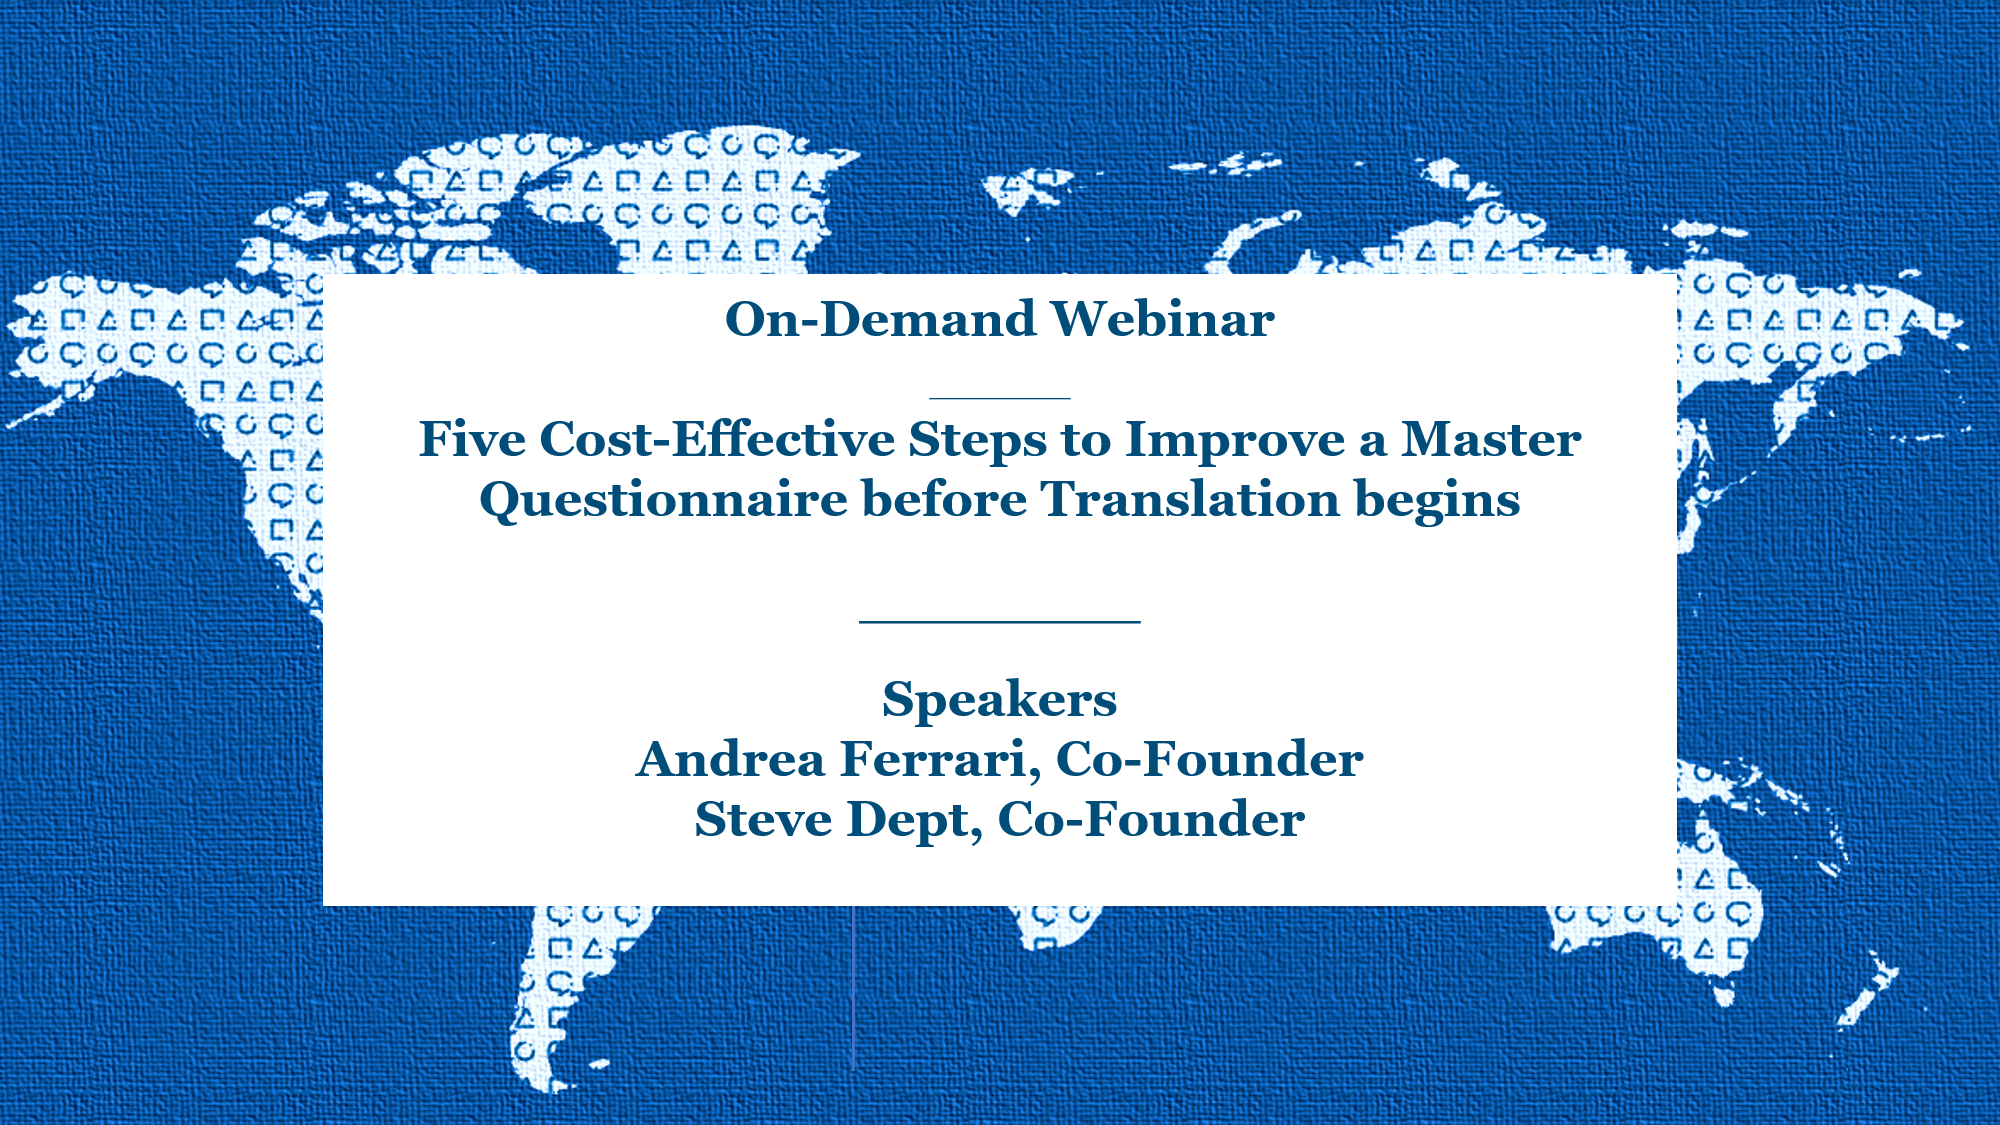 On-Demand Webinar | Five Cost-Effective Steps to Improve a Master Questionnaire before Translation begins